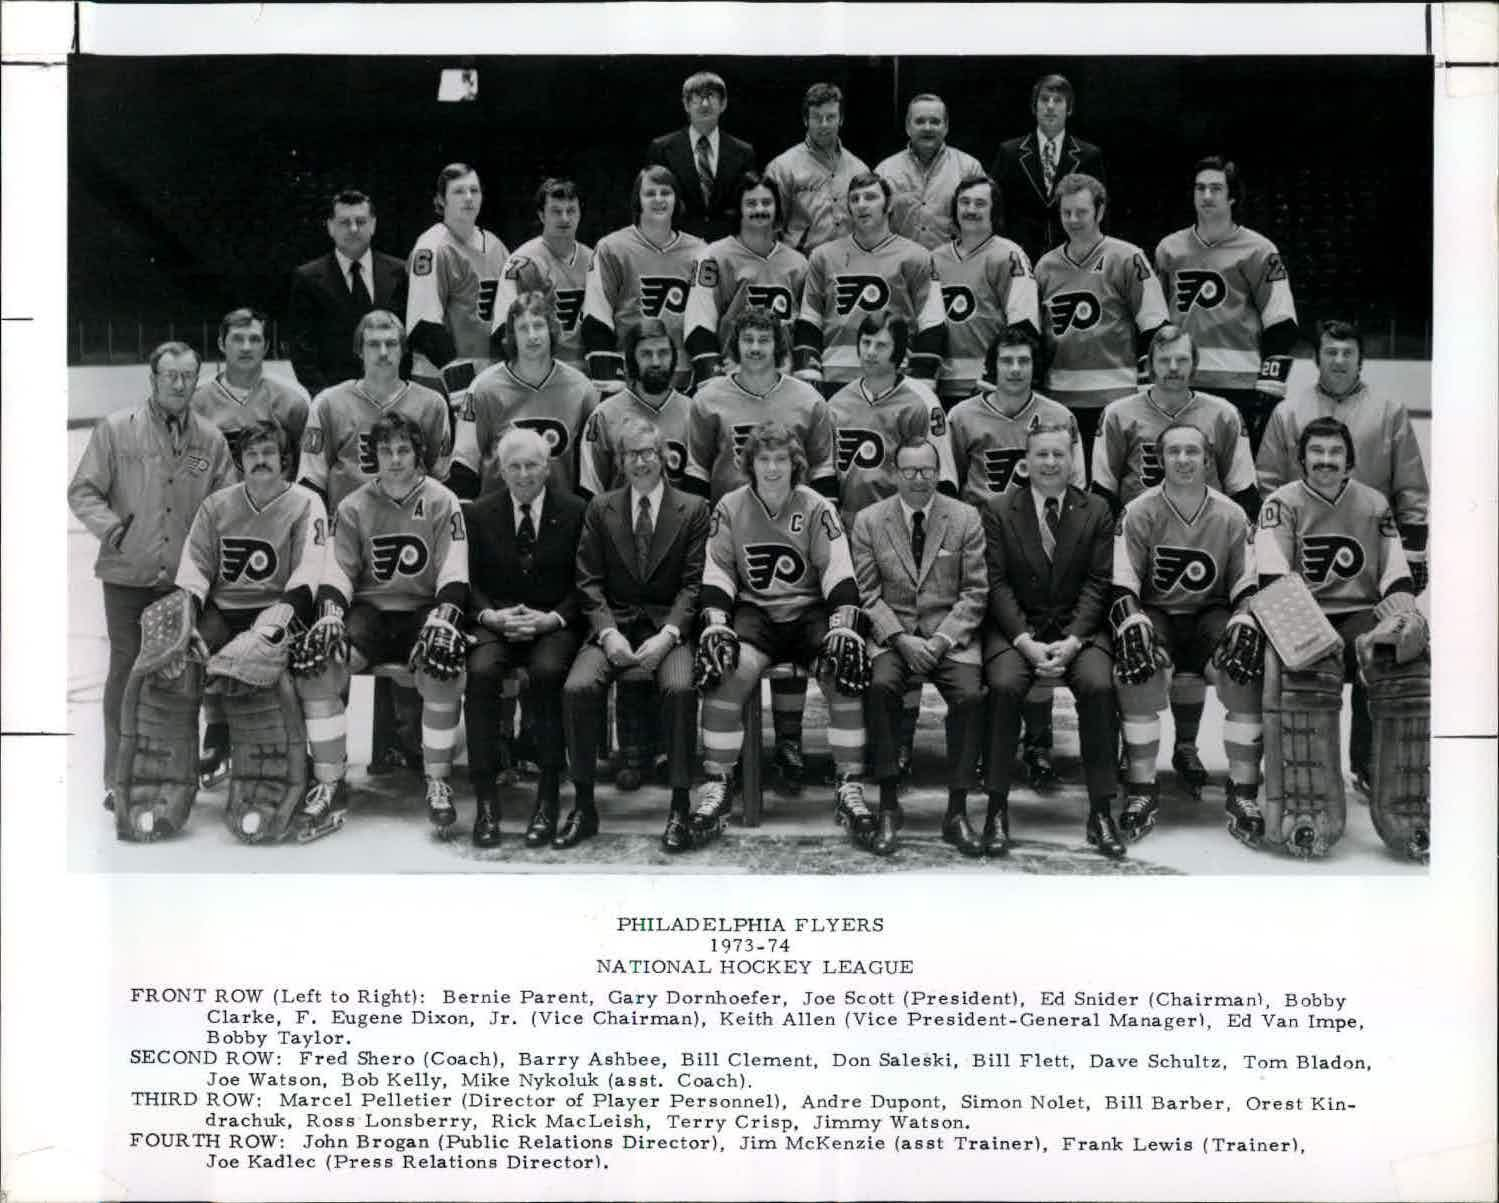 ...and the rest of the Broad Street Bullies By far the